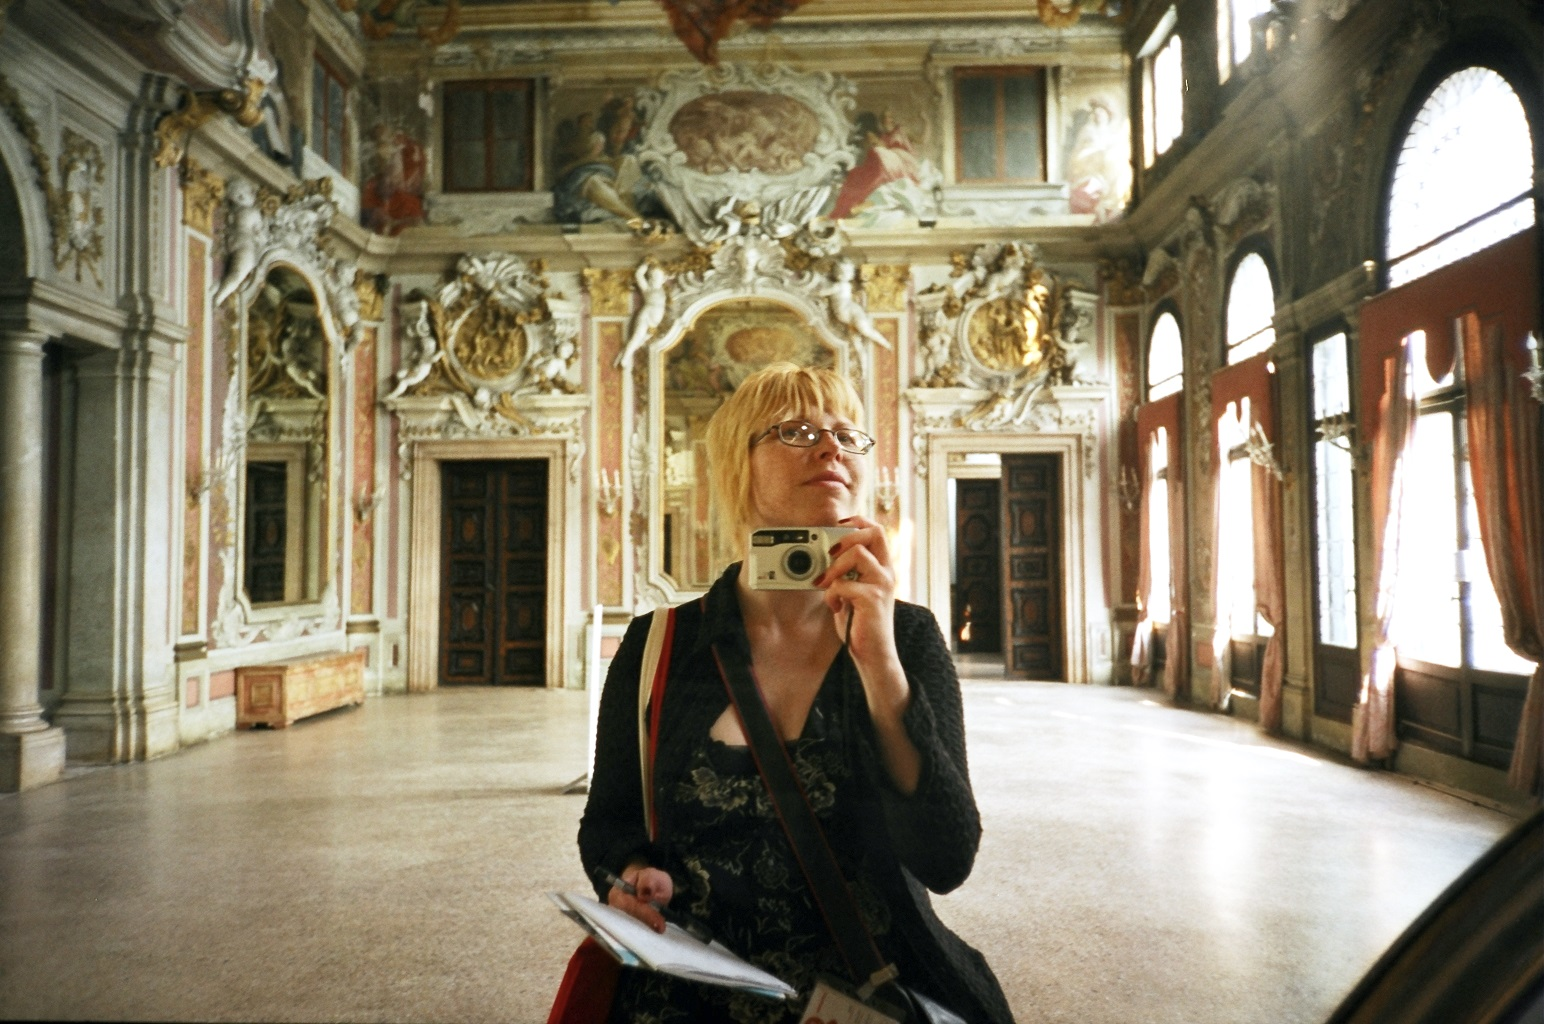 Alise Tifentale as an art critic at the Venice Biennale, 2005.